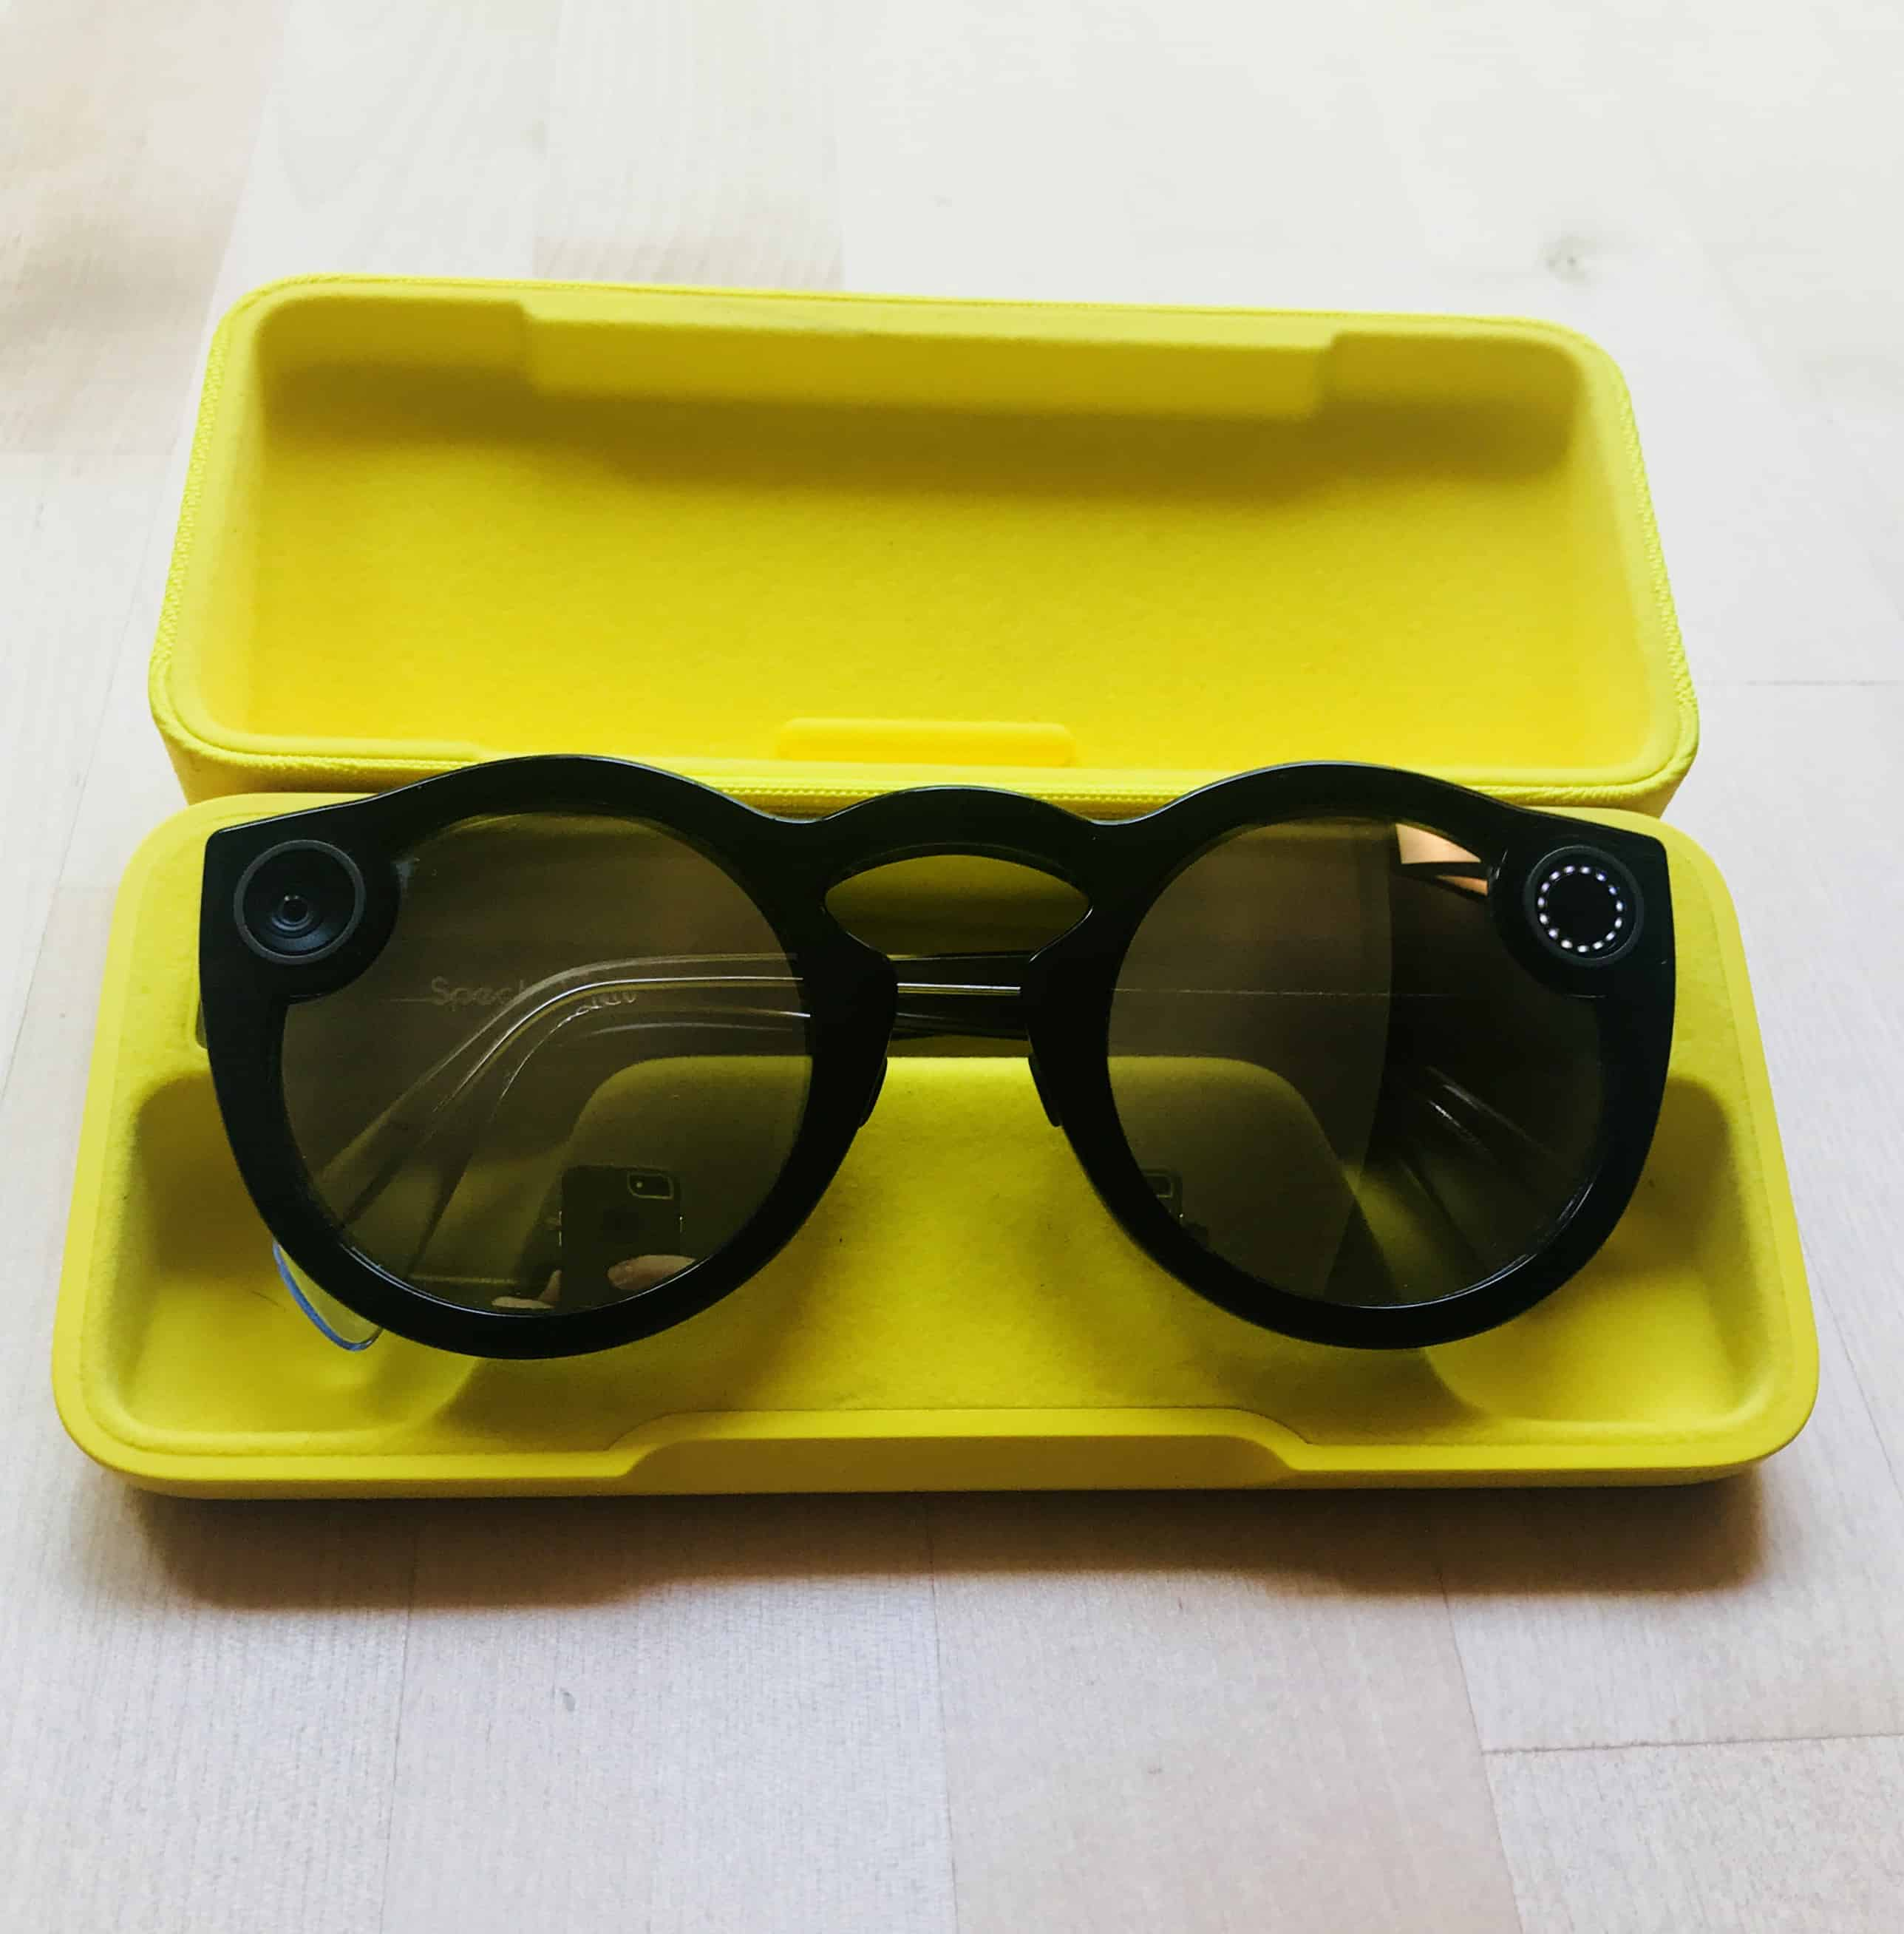 Snapchat Spectacles V2 Show Promise for the Future